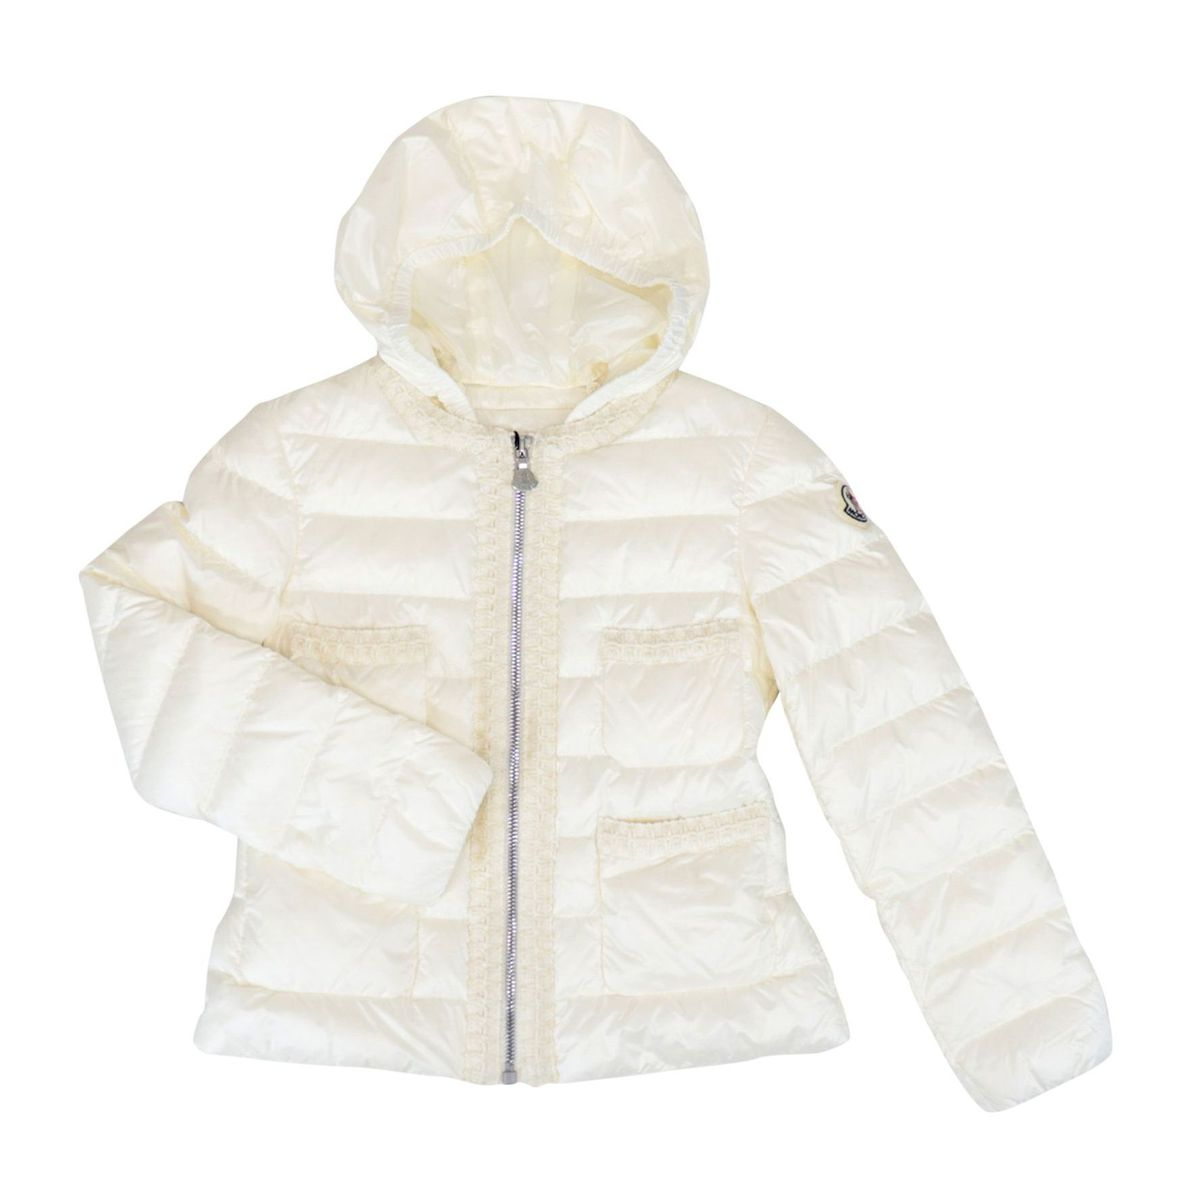 Citron down jacket with hood and macramé effect decorations Cream Moncler